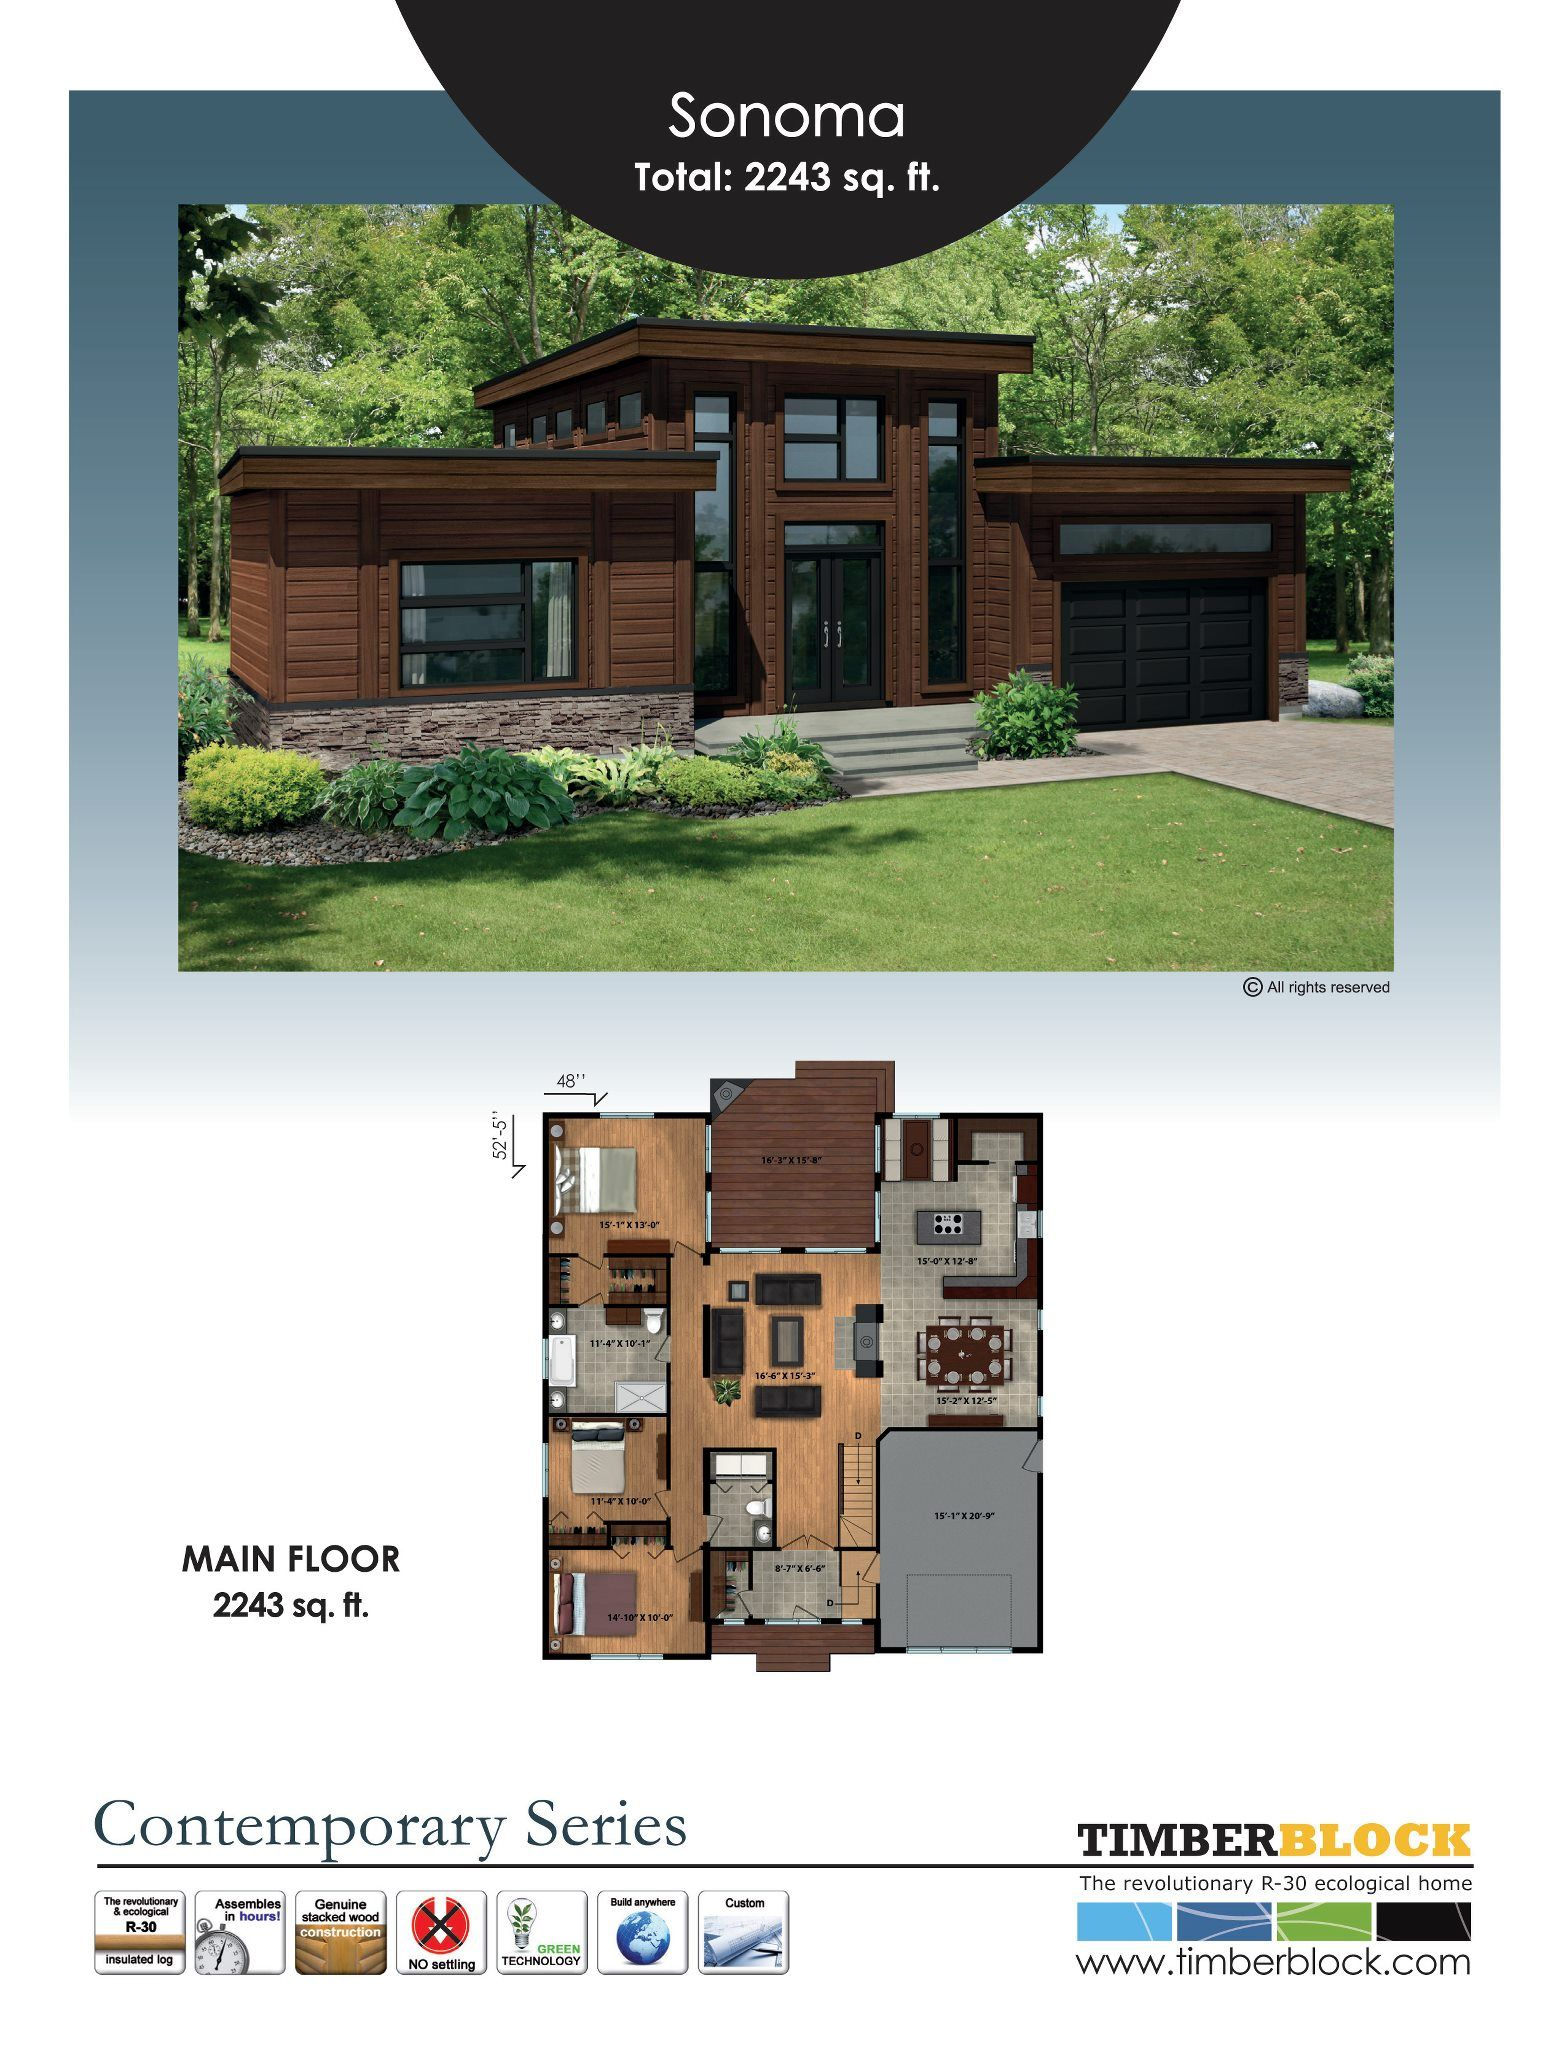 The Sonoma is a model found in Timber Block's Contemporary ...